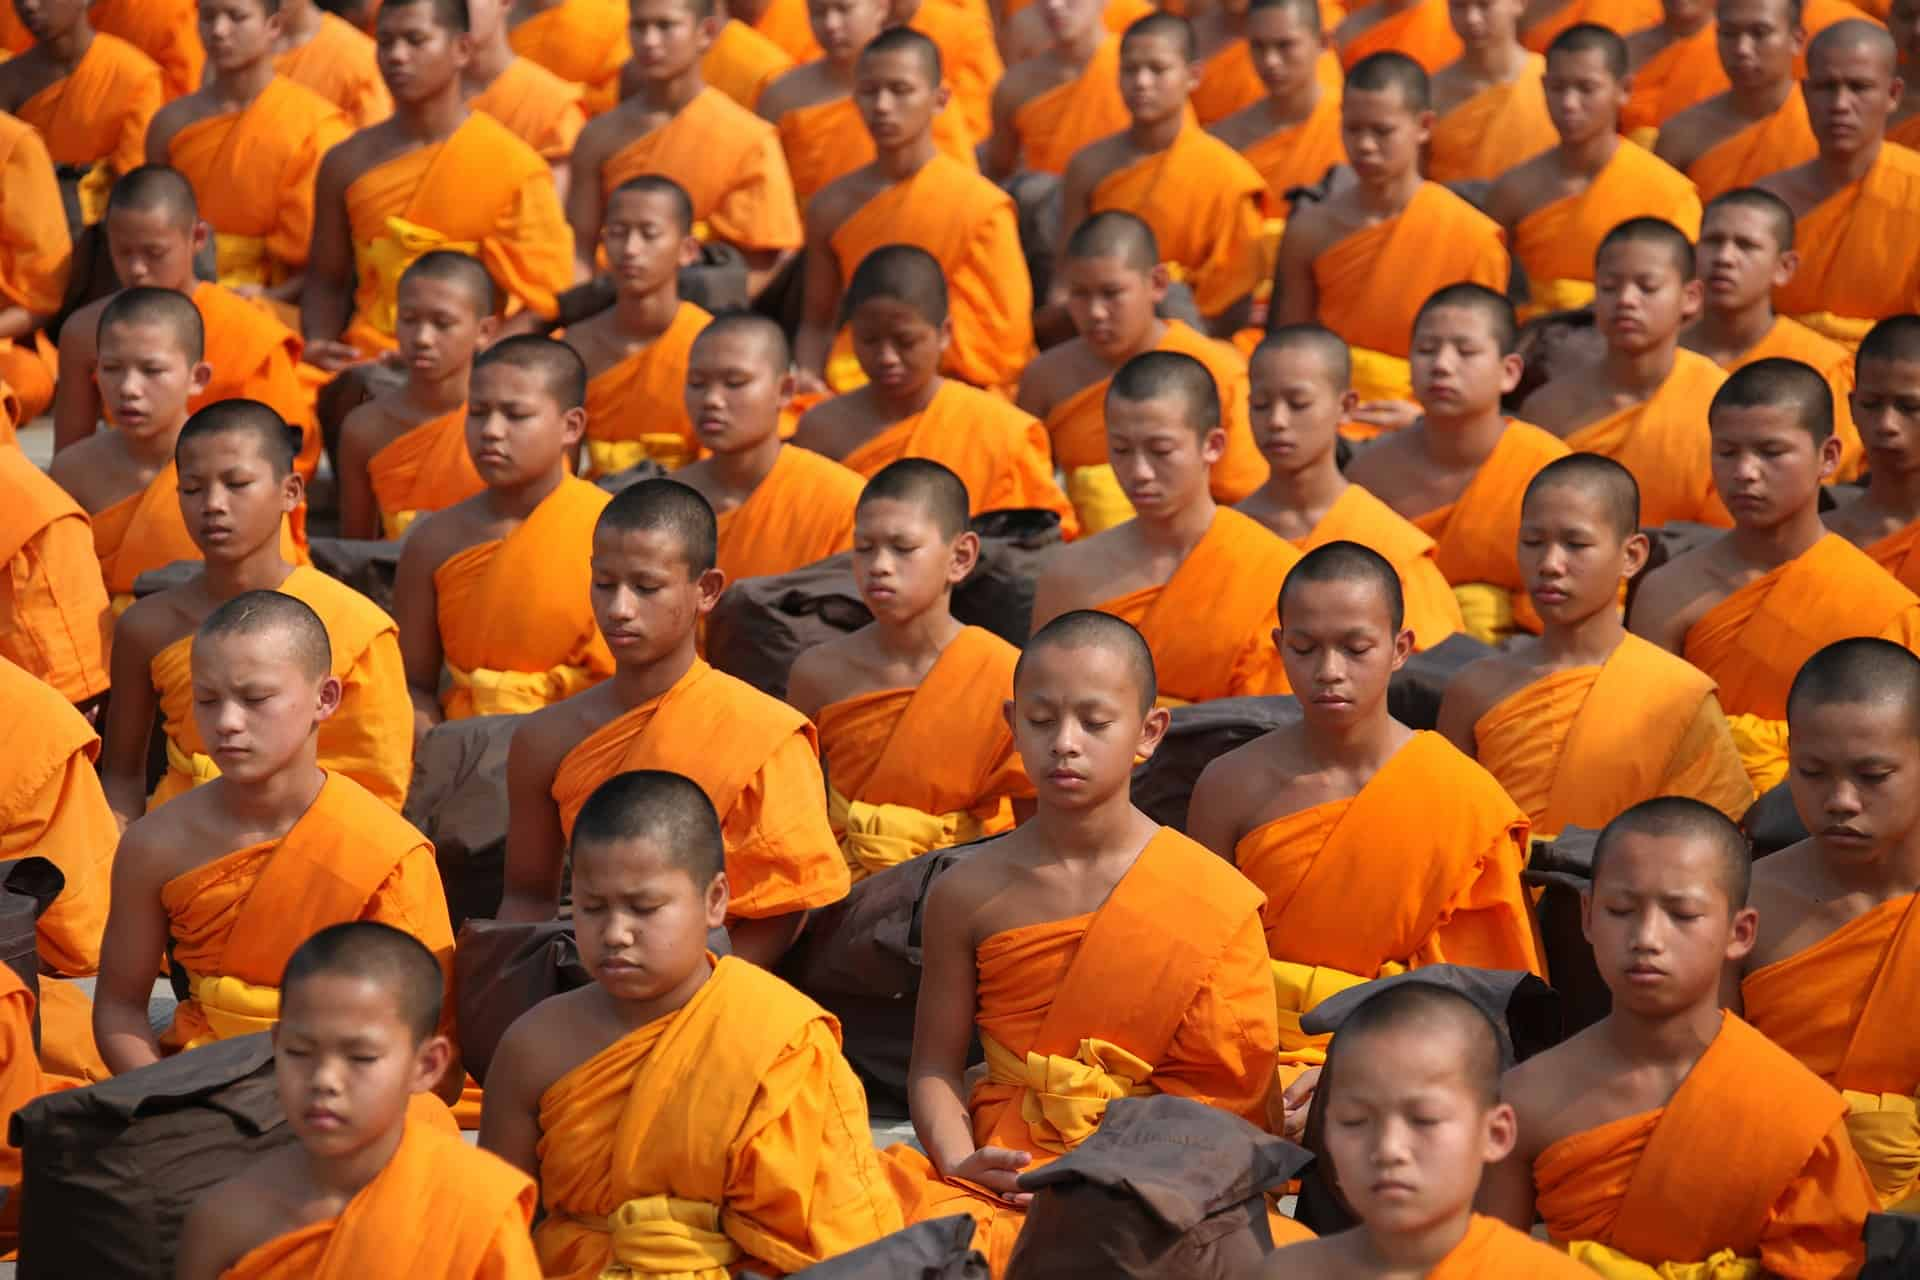 thailand monk students, thailand facts